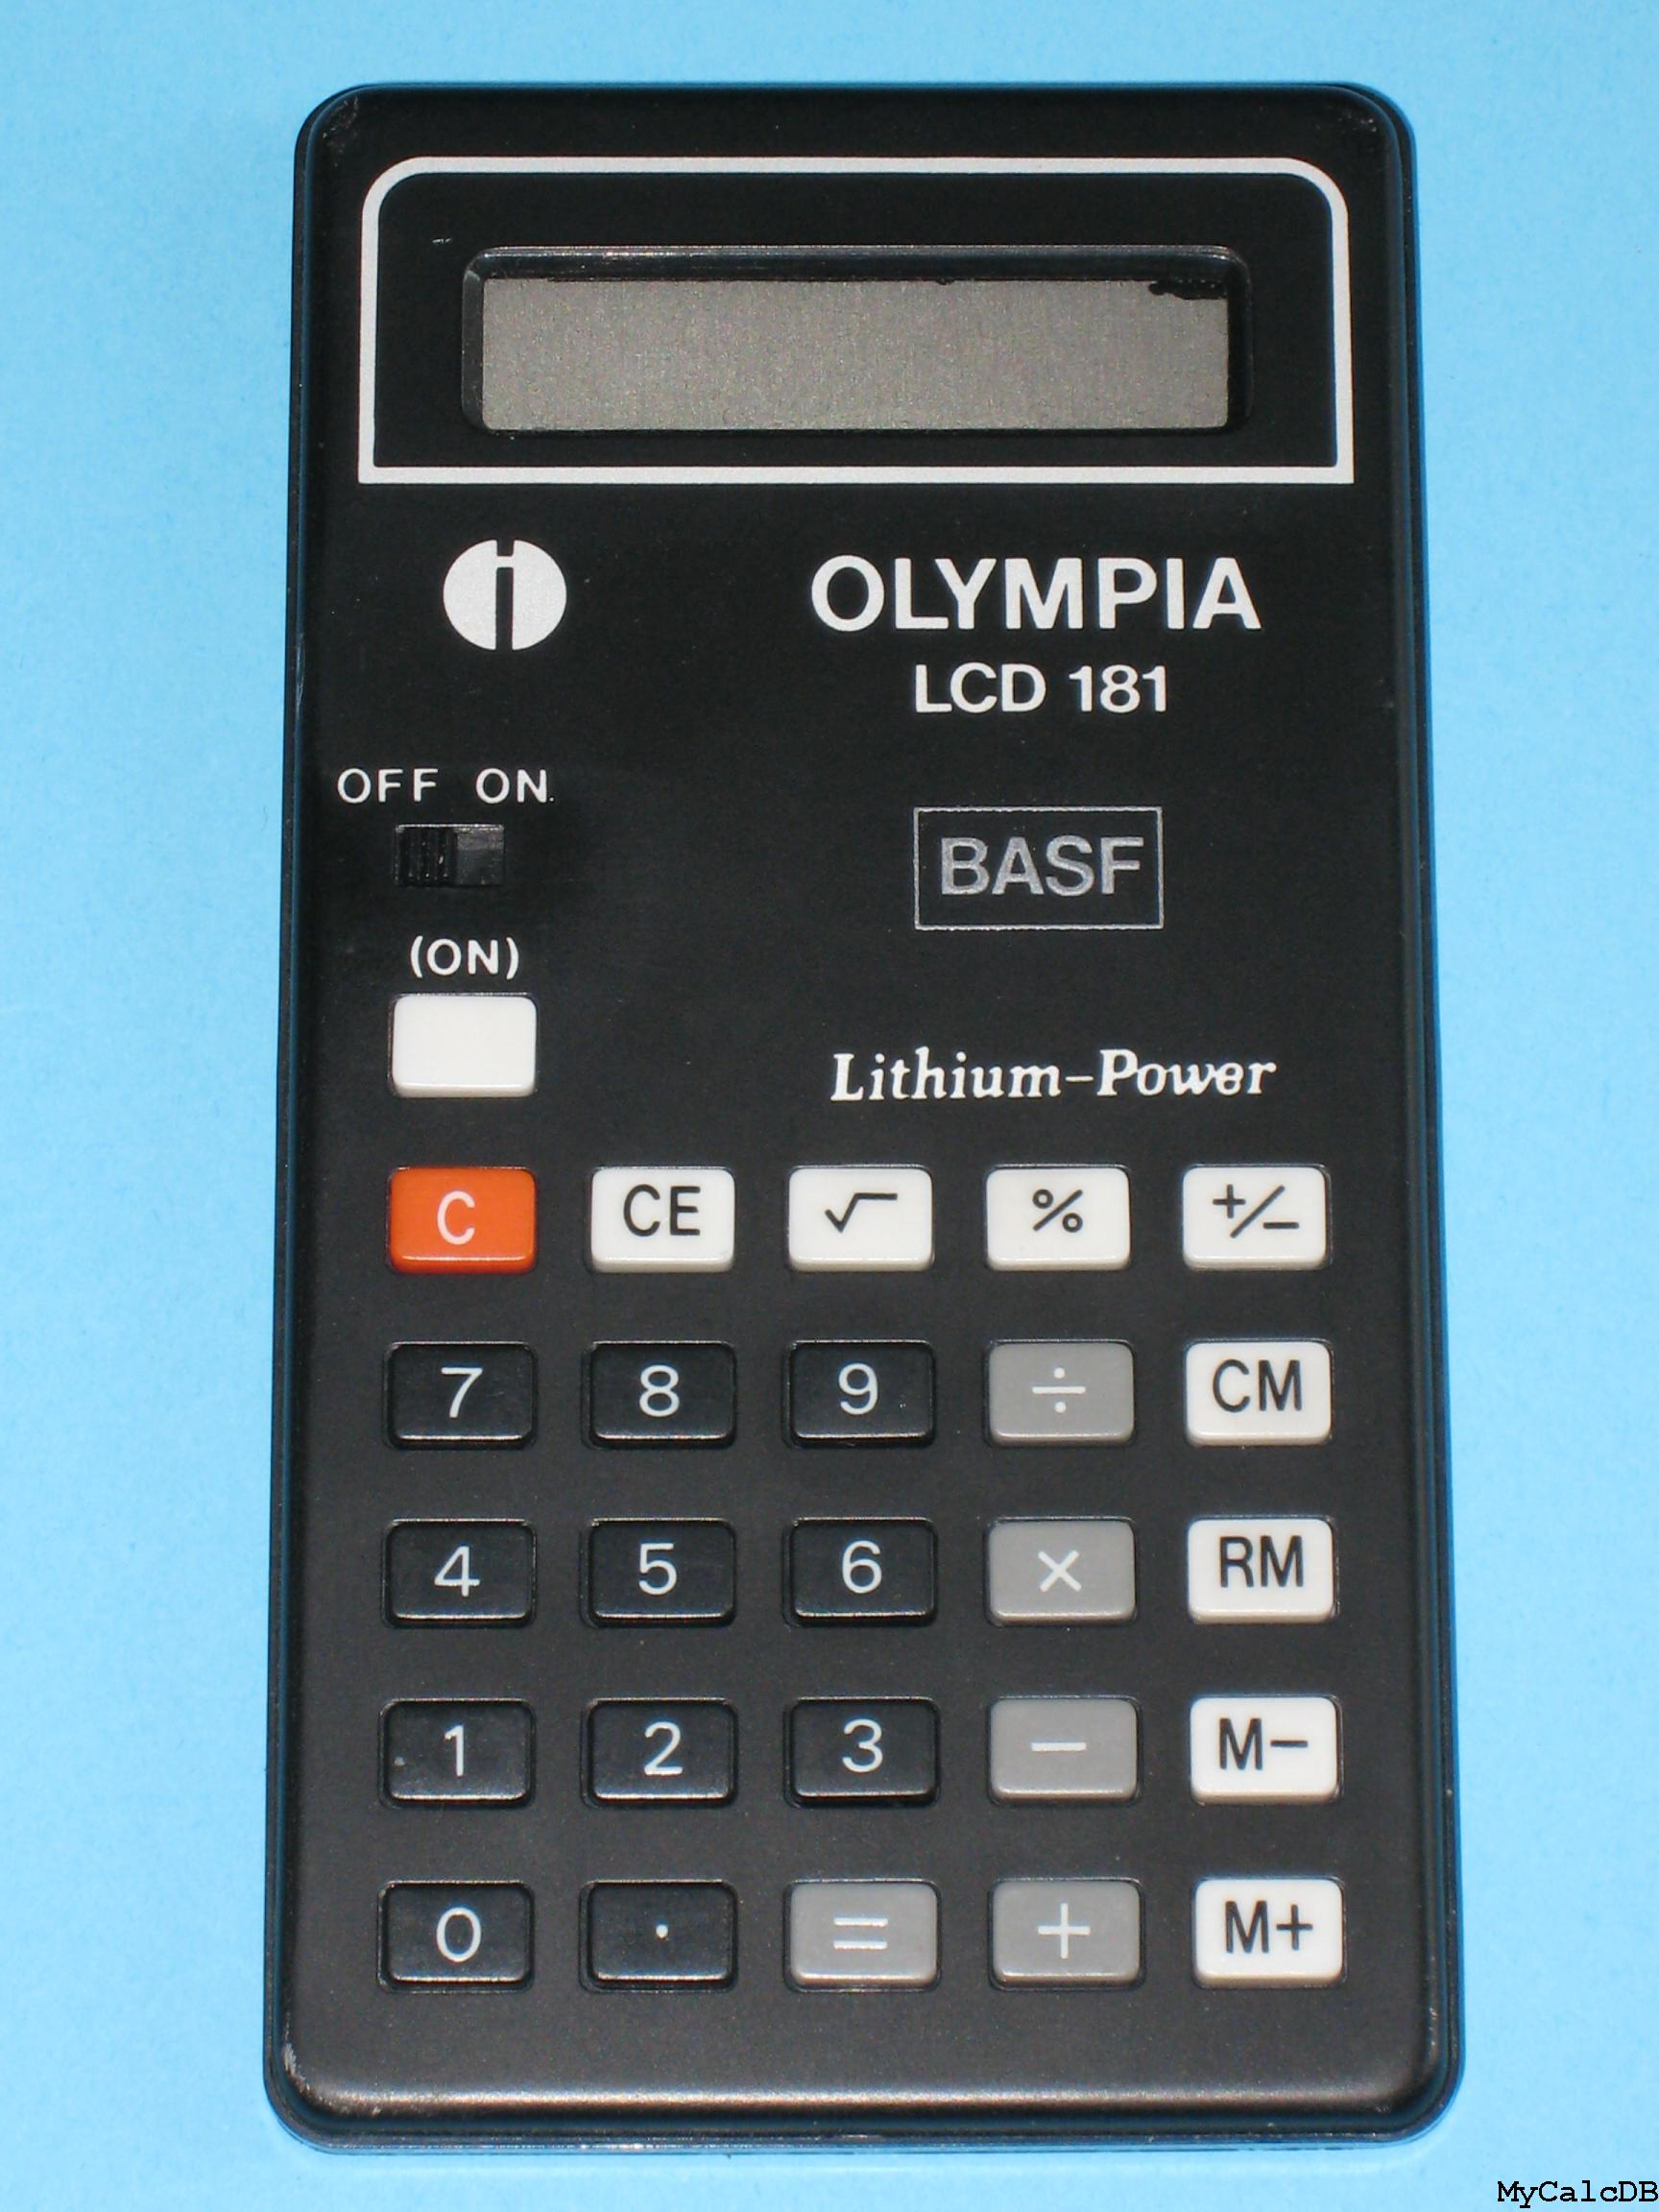 Olympia LCD 181